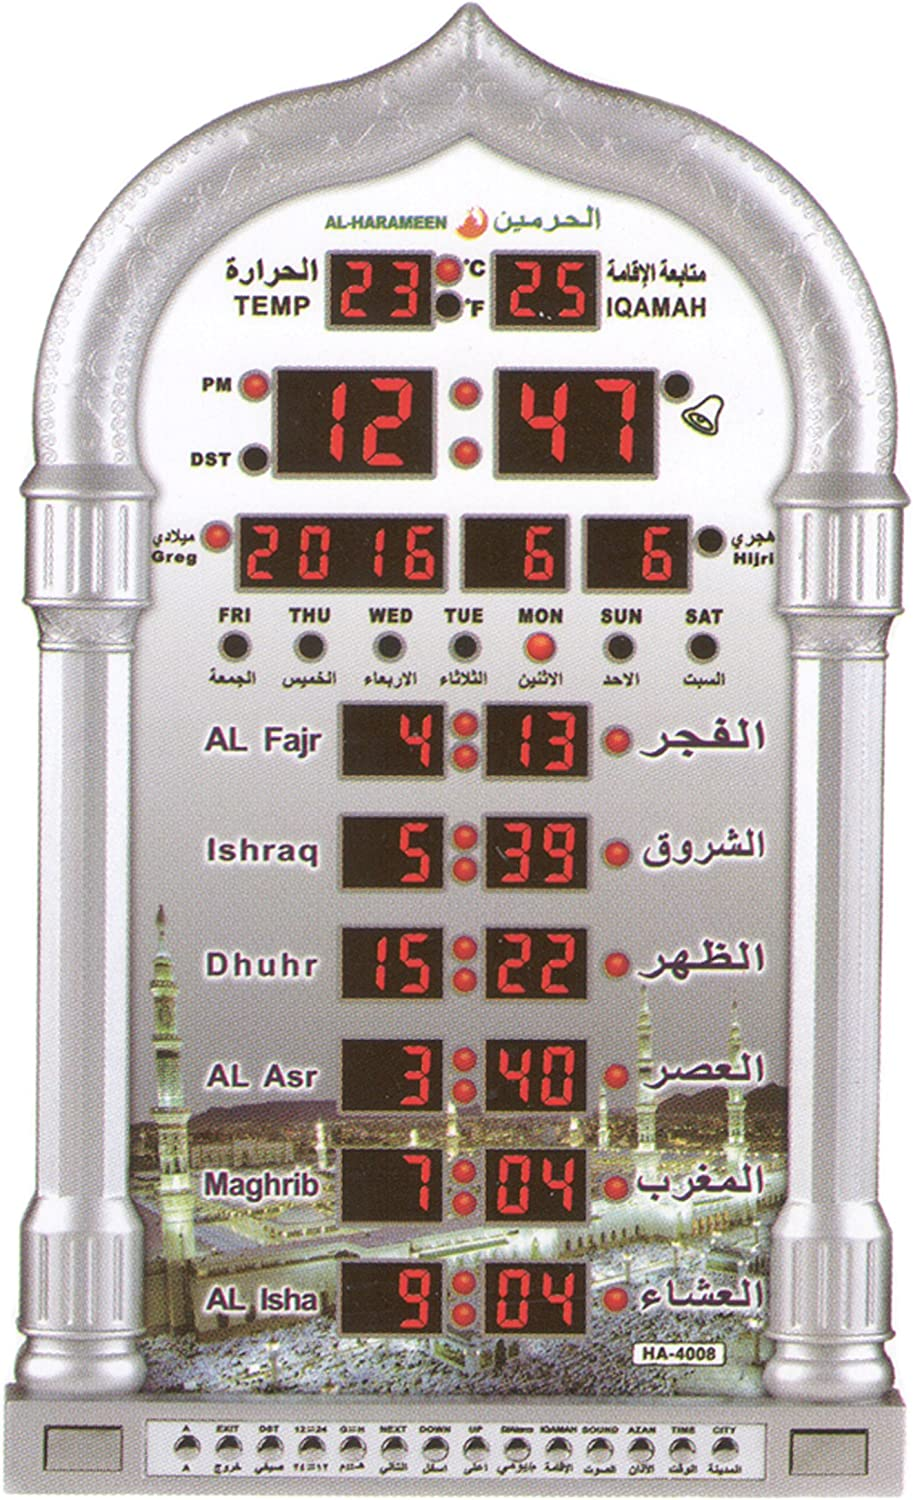 Azan Clock//Muslim Clock//Islamic Wall Clock Office and Mosque 4010 Gold Prayer Times Wall Clock,Mosque,Masjid Clock with Complete Azan for All Prayer,Larger for Home AL-HARAMEEN